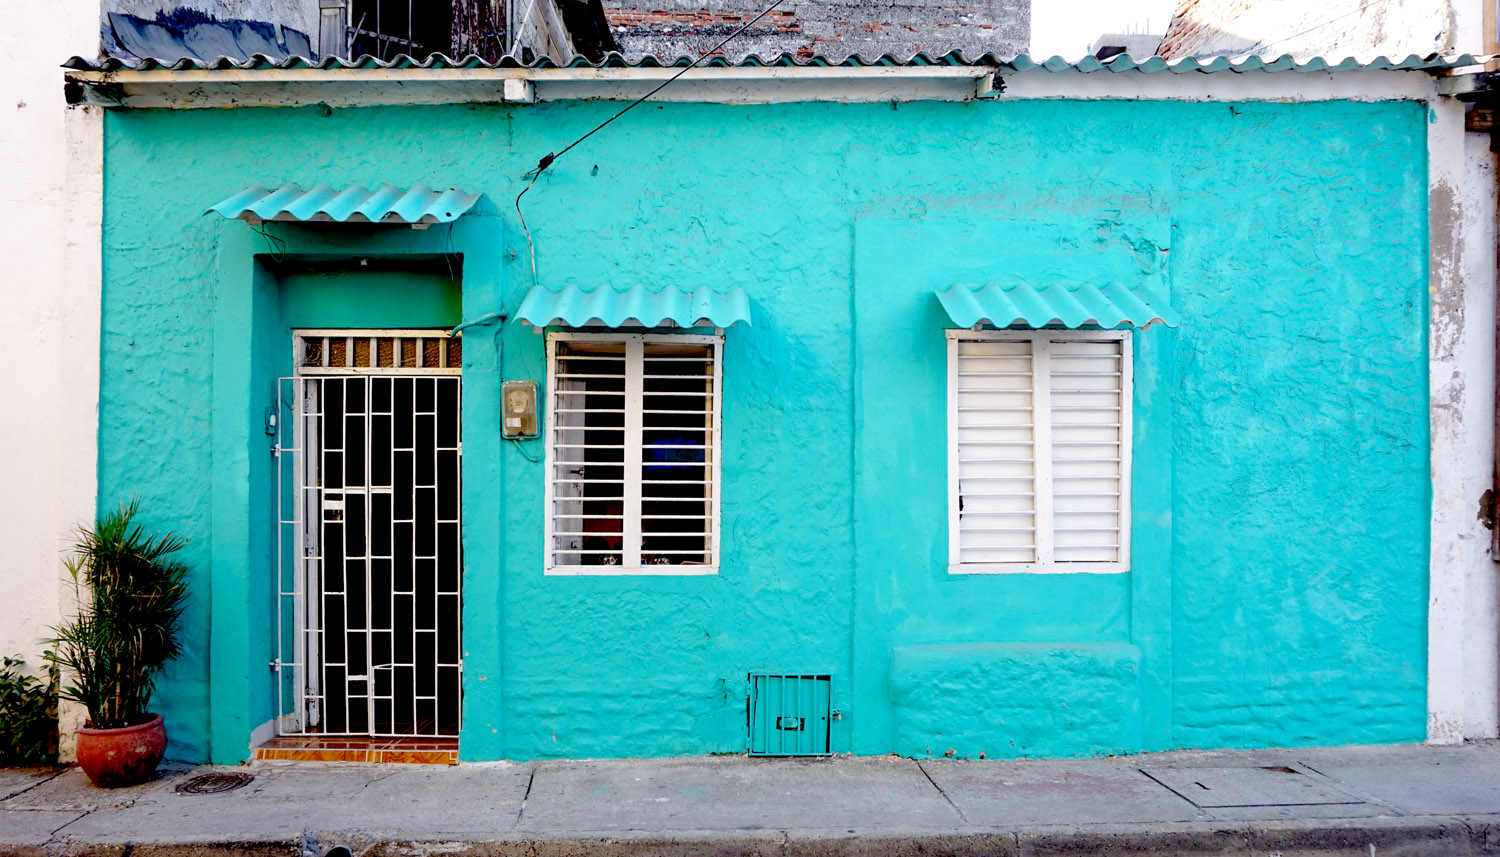 Getsemaní Cartagena Colorful Streets Teal Building